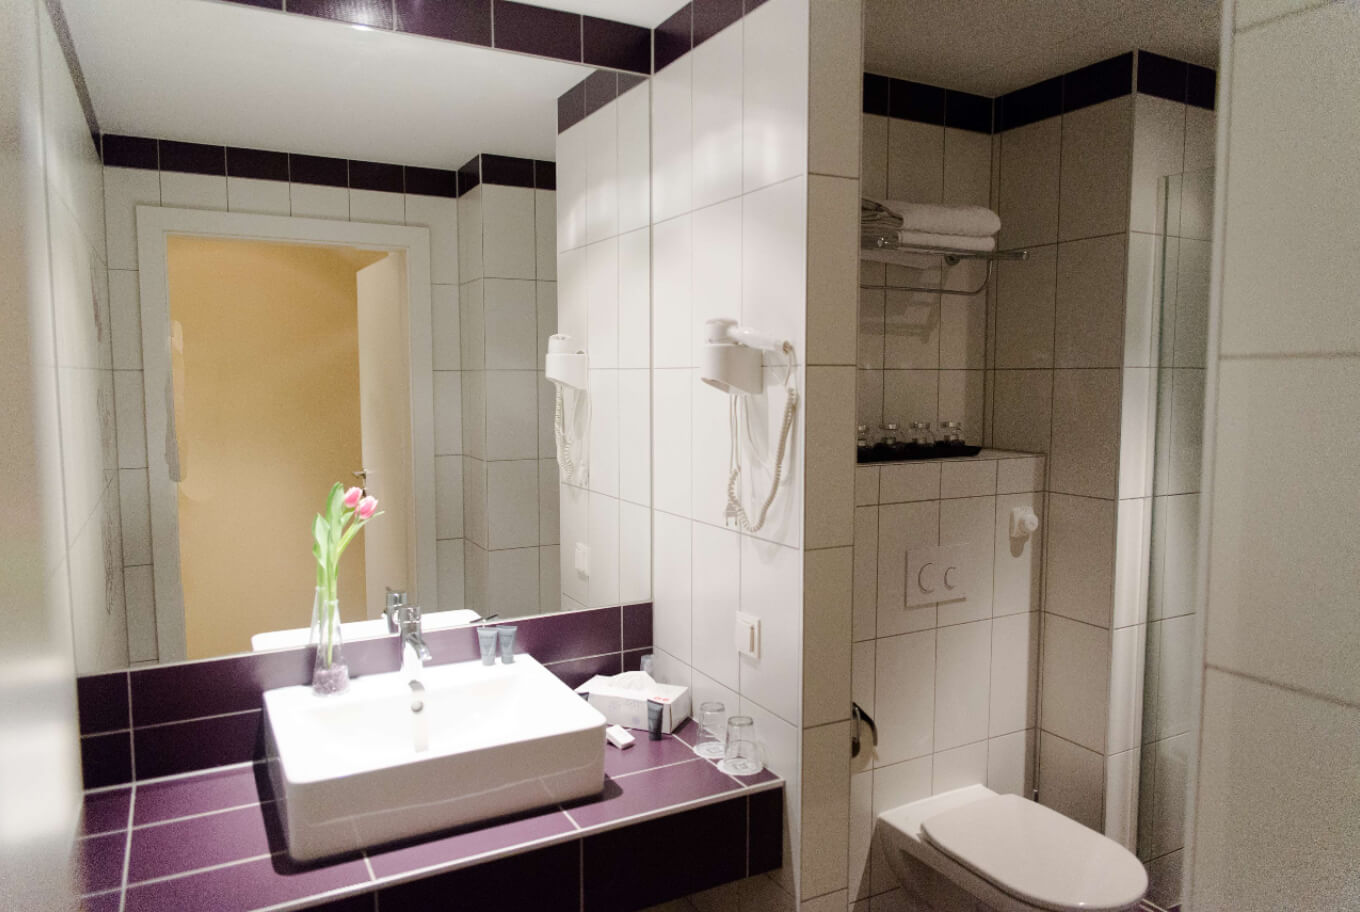 One of the bathrooms in our Boutique Hotel Wien.